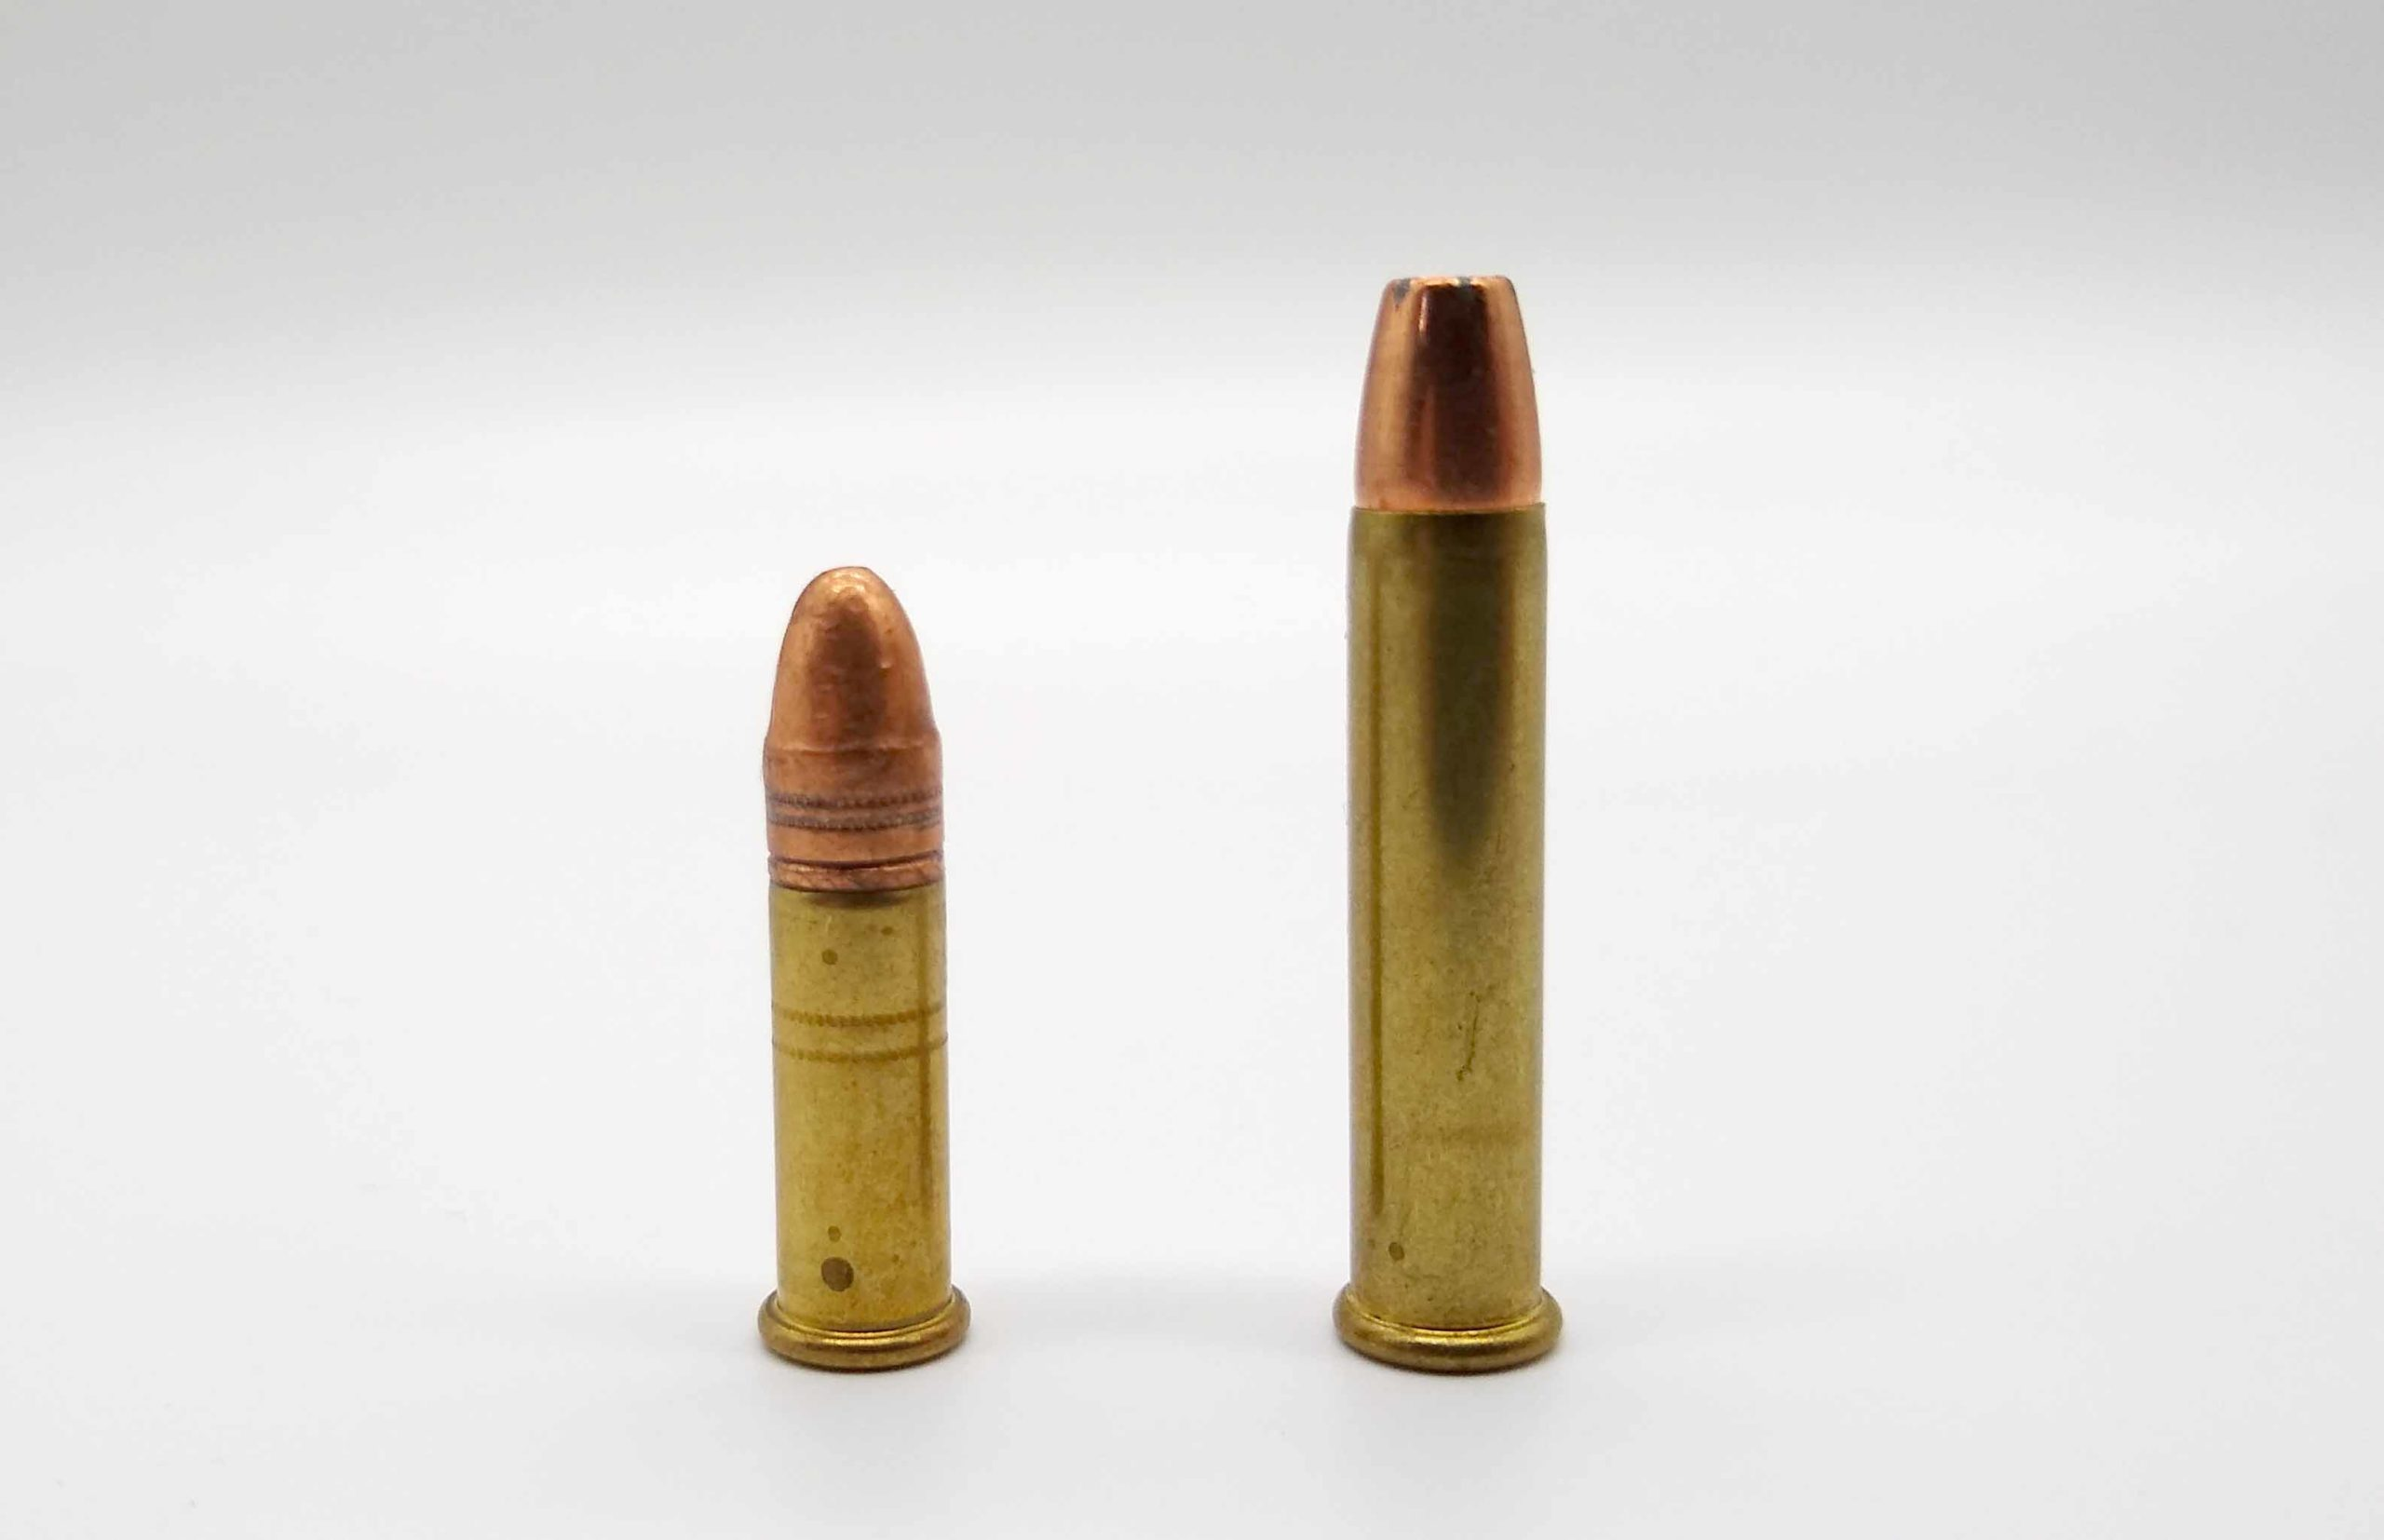 As is seen, the .22 Magnum (right) had much more case capacity as compared to the .22 Long Rifle (left).